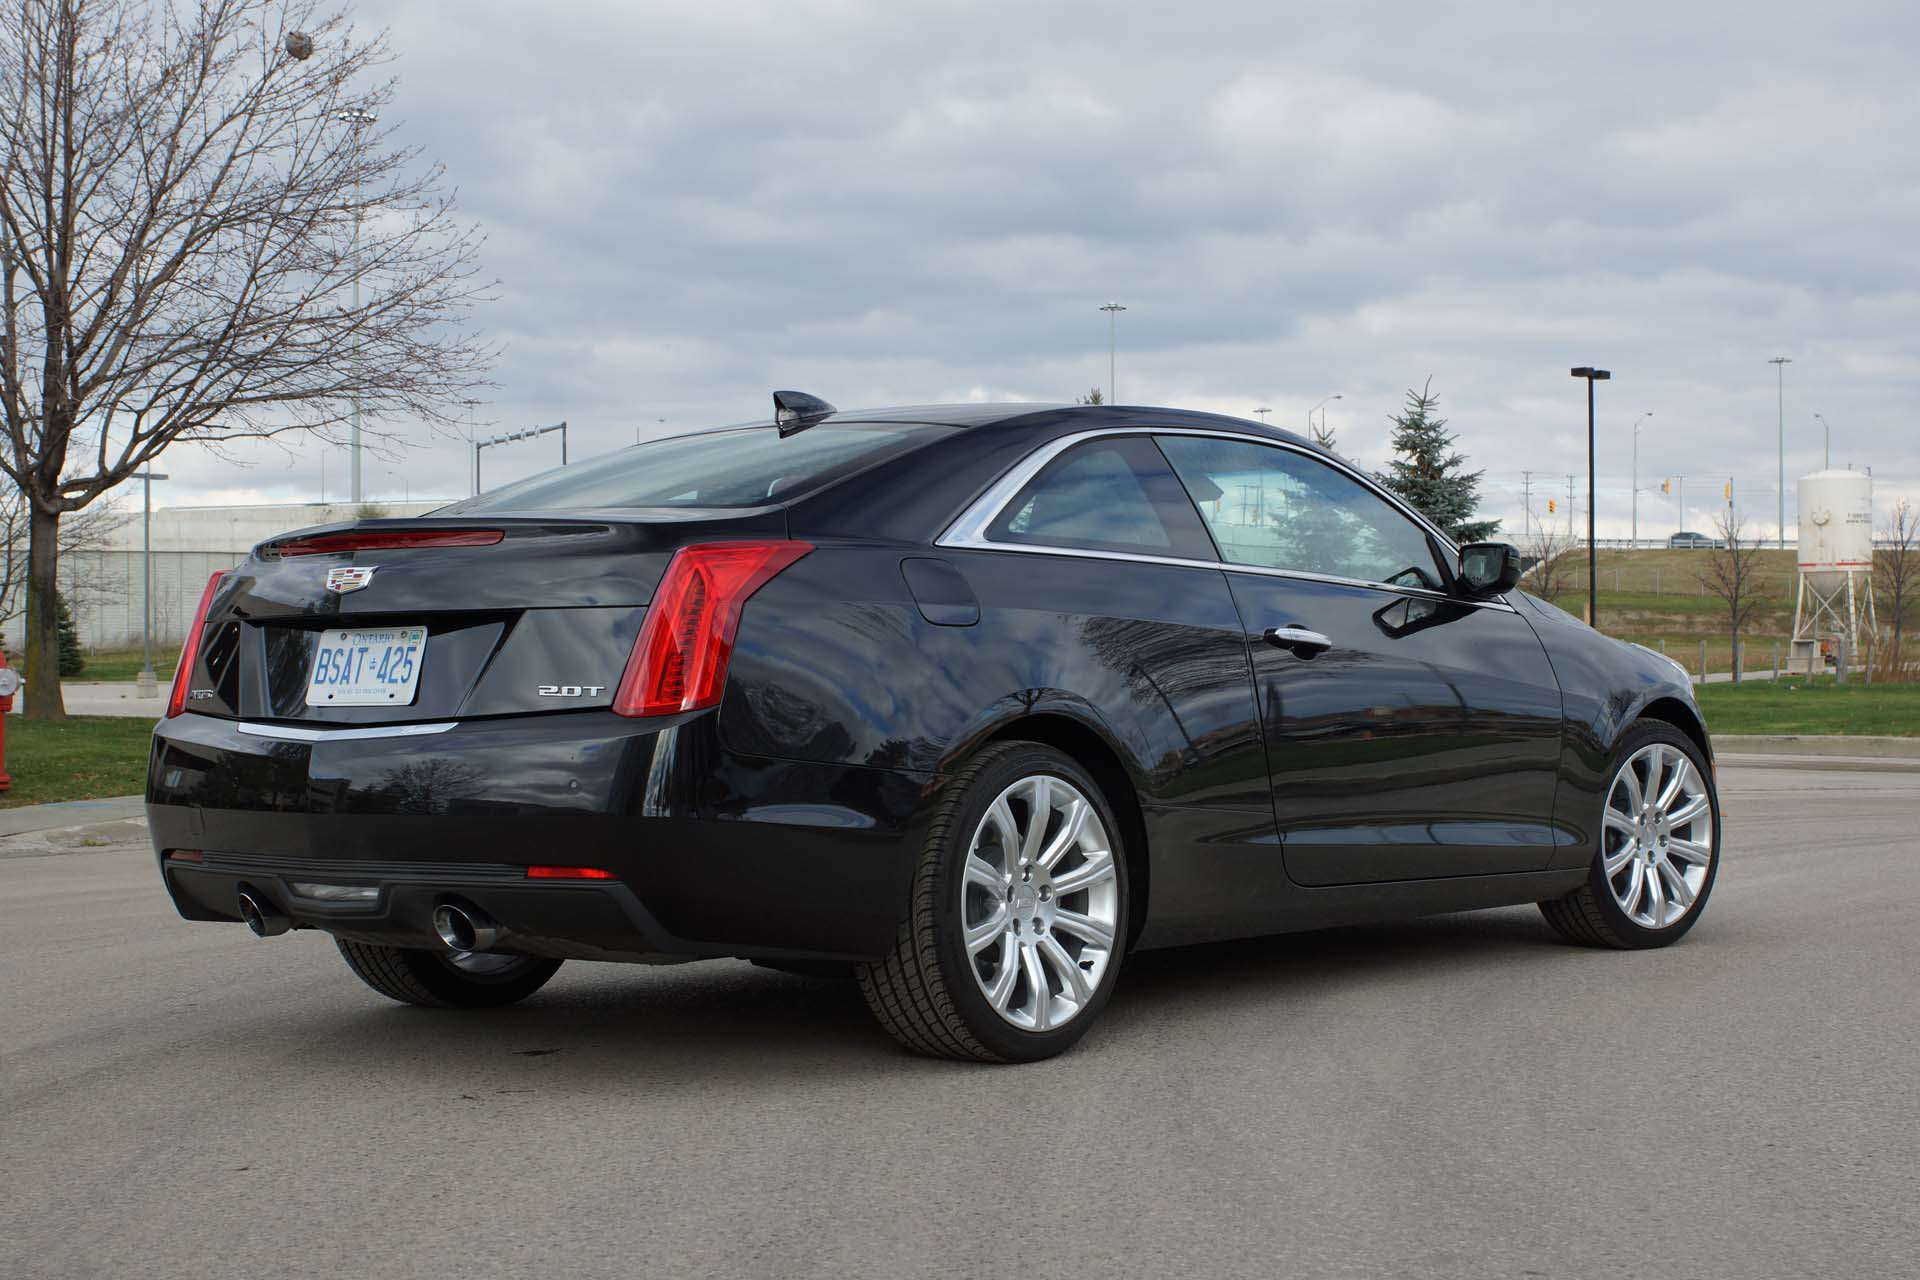 2015 cadillac ats 2 0l turbo luxury coupe. Black Bedroom Furniture Sets. Home Design Ideas